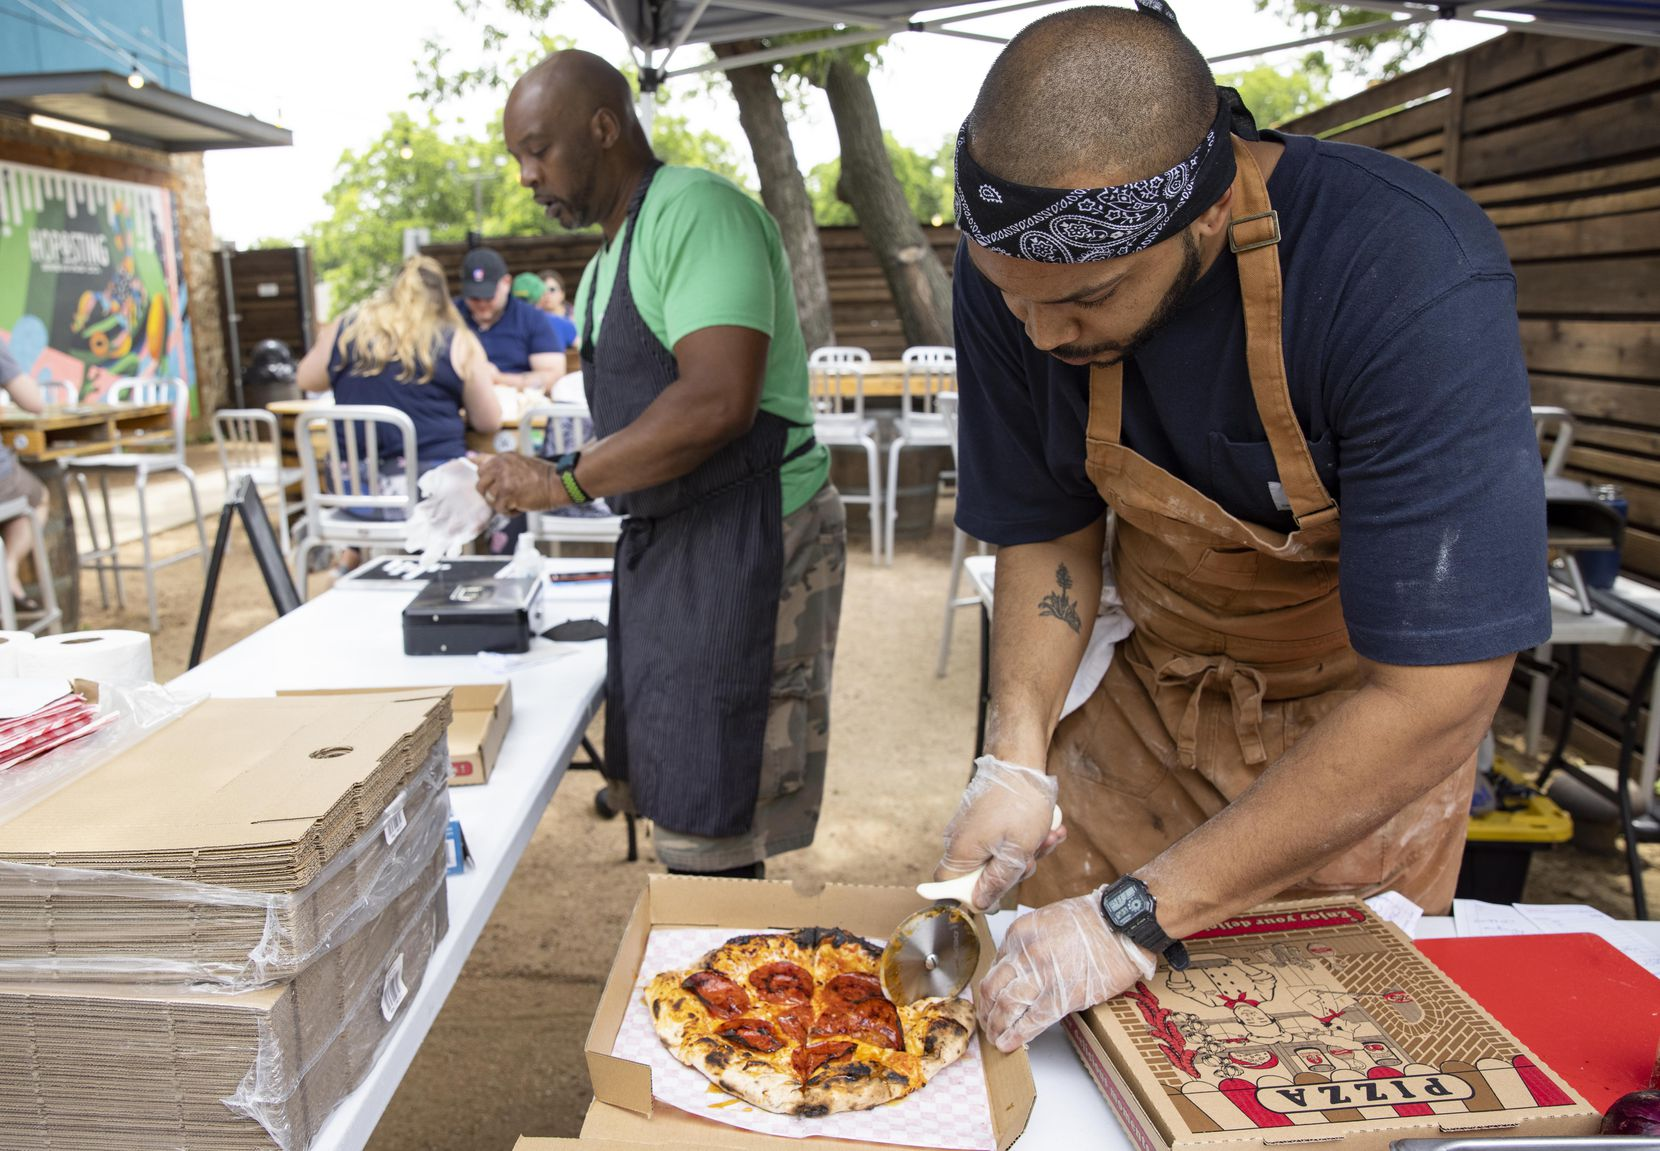 Desmon Coleman, owner of Hustle Town Pizza, boxes up a spicy pepperoni pizza while dad James Coleman takes orders at Hop and Sting Brewing Co. in Grapevine.